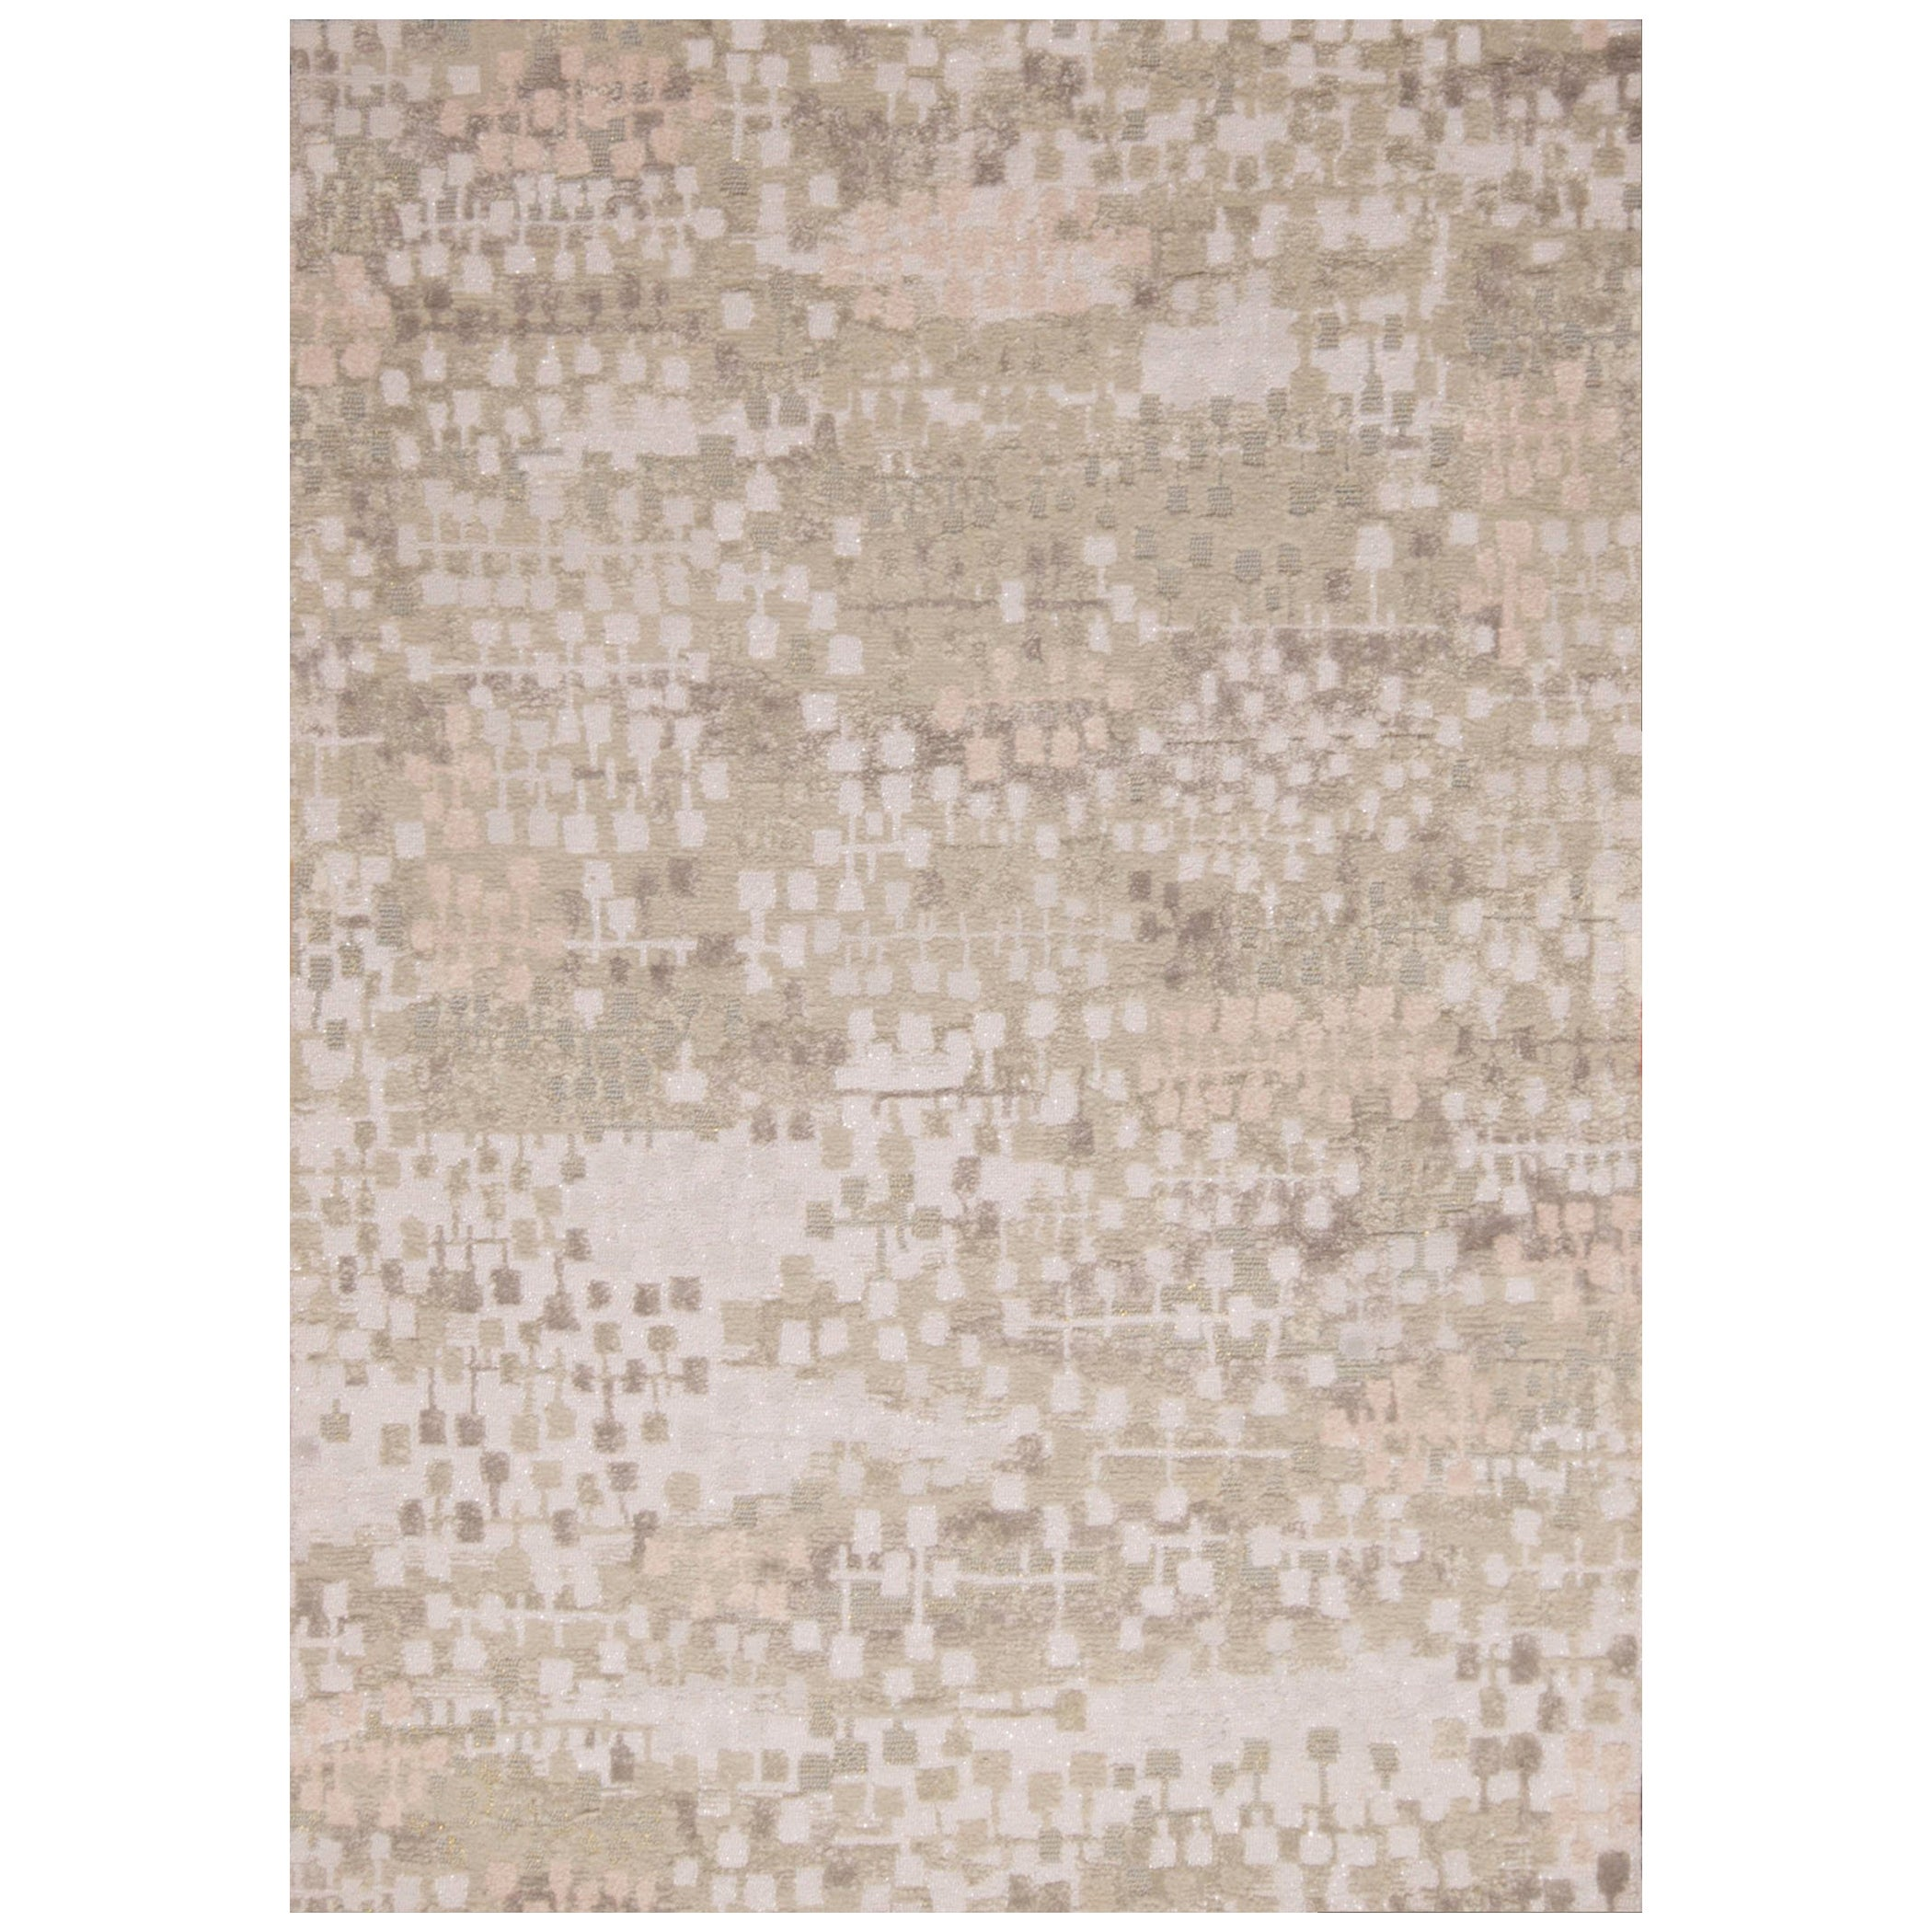 Contemporary Kaleidoscope Gray and Beige Wool Rug